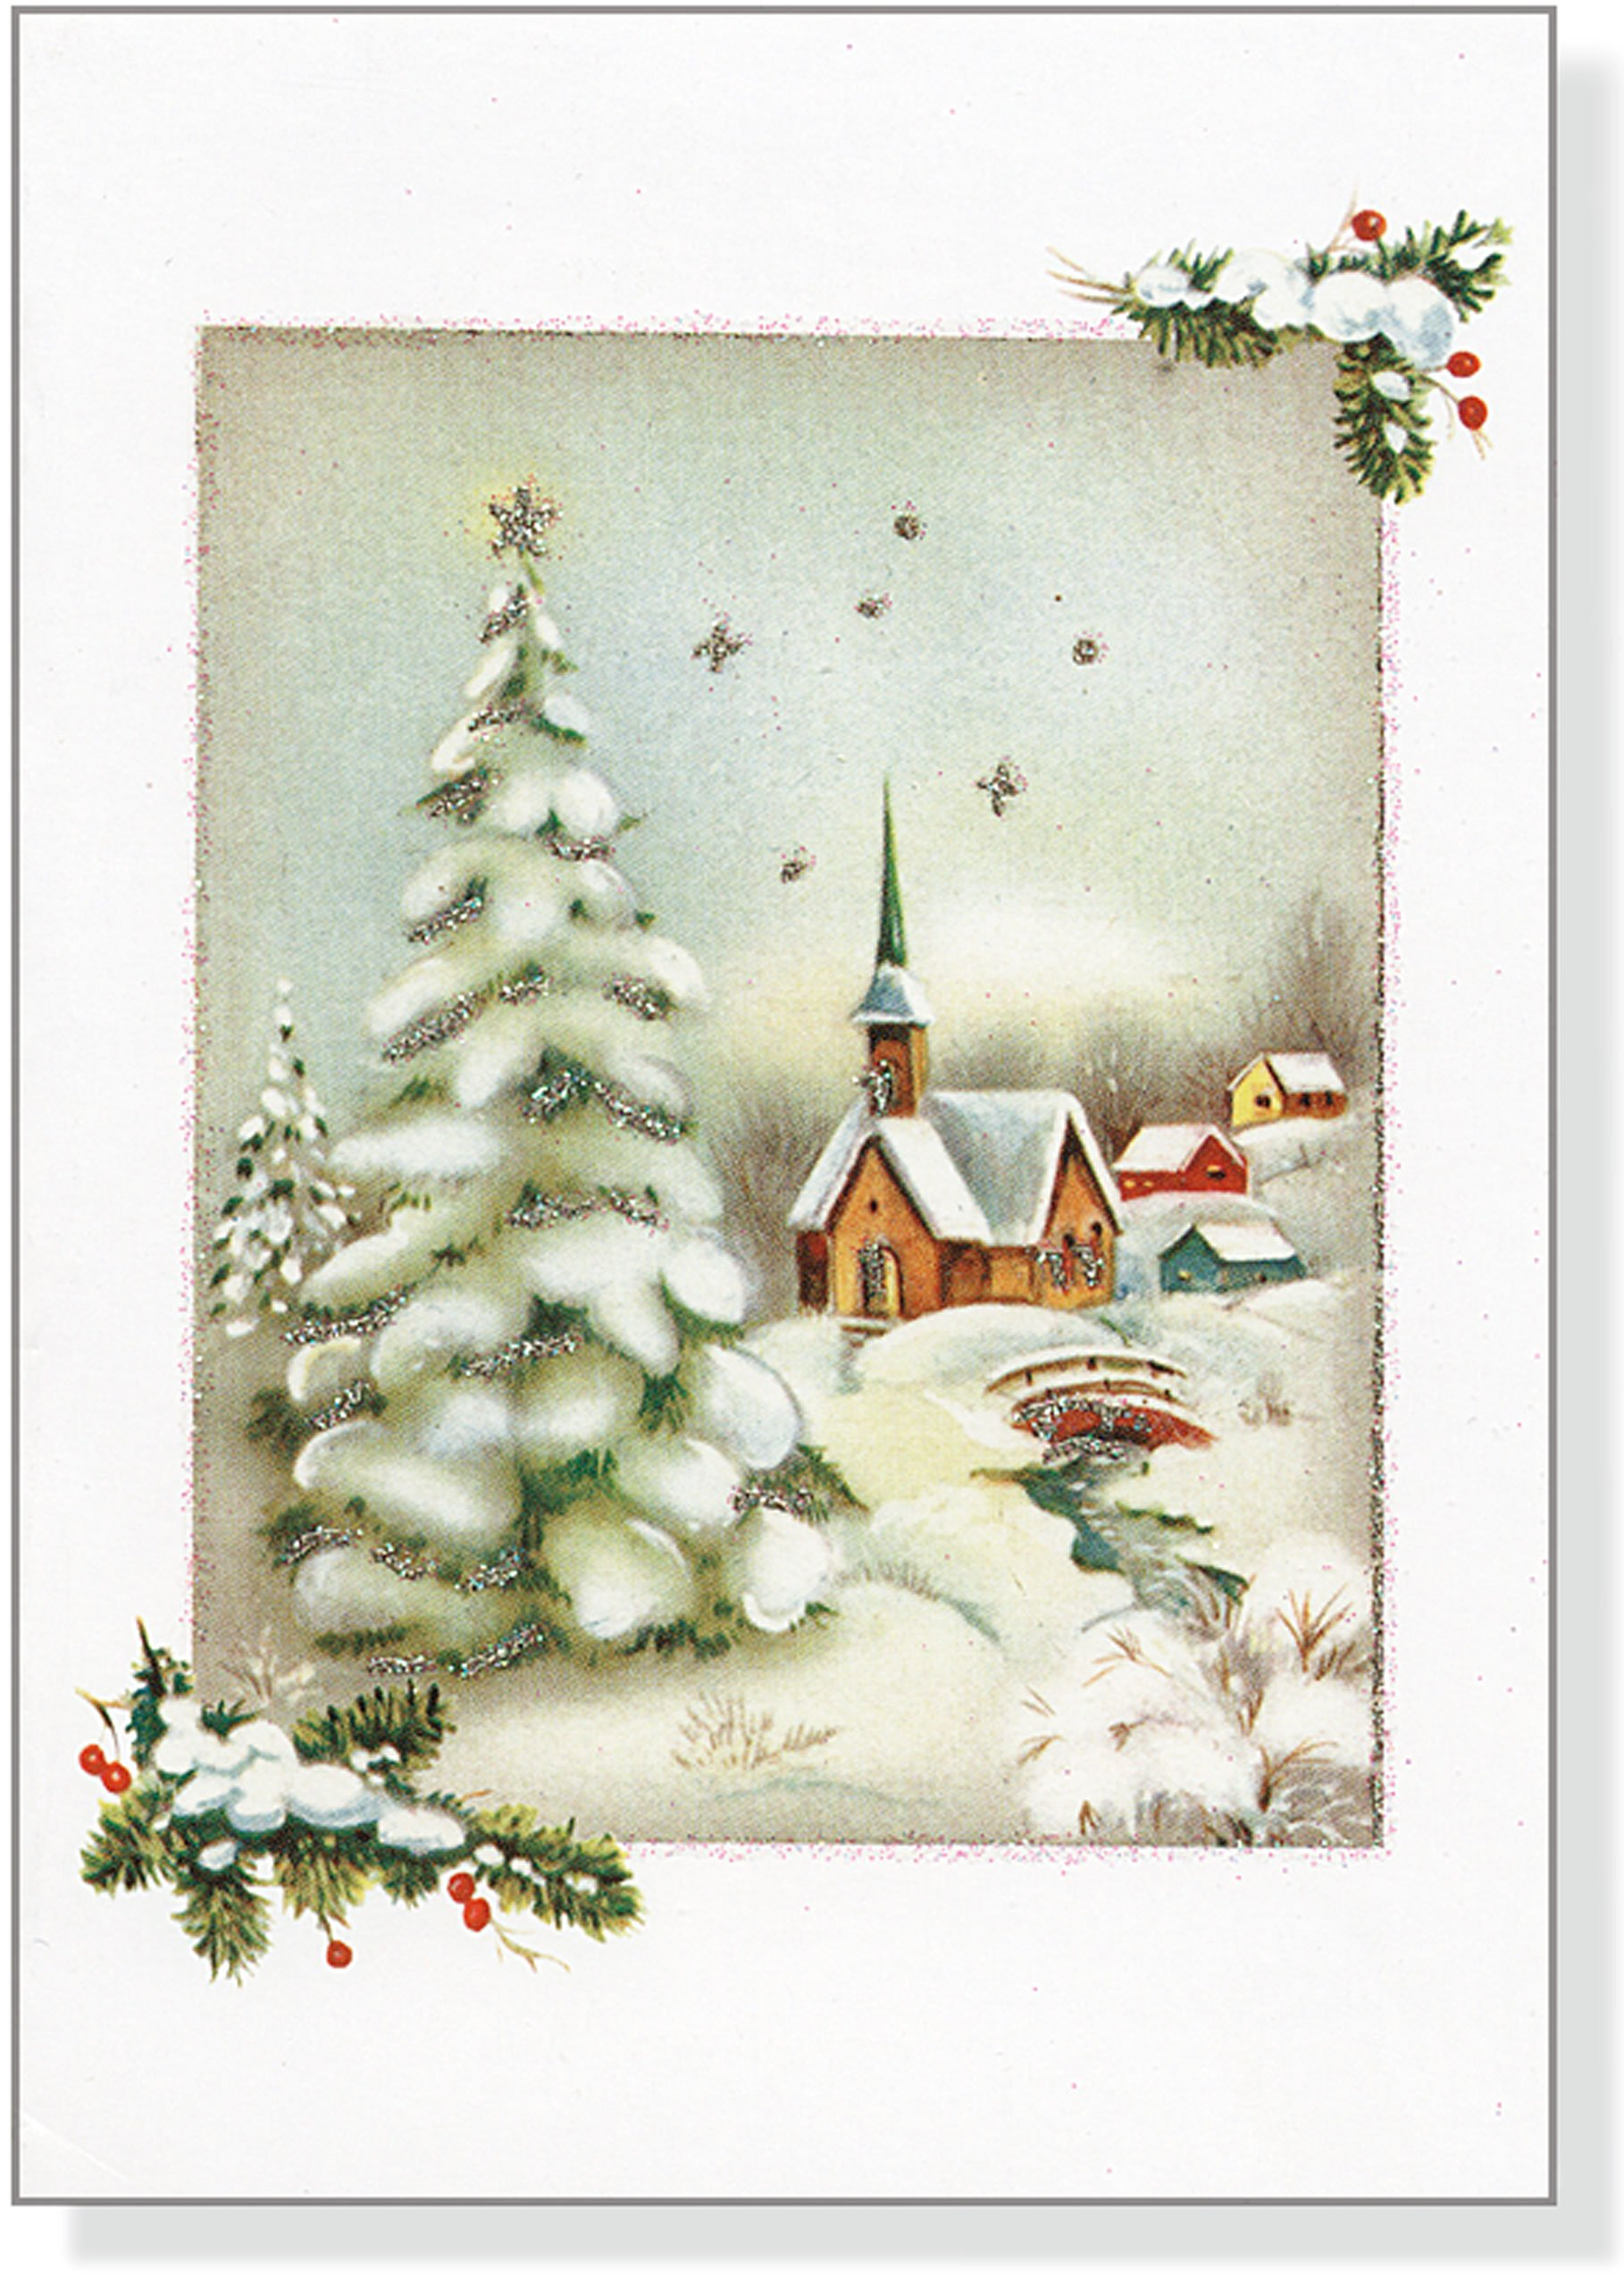 vintage winter church small boxed holiday cards christmas cards holiday cards greeting cards inc peter pauper press 9781441304841 amazoncom books